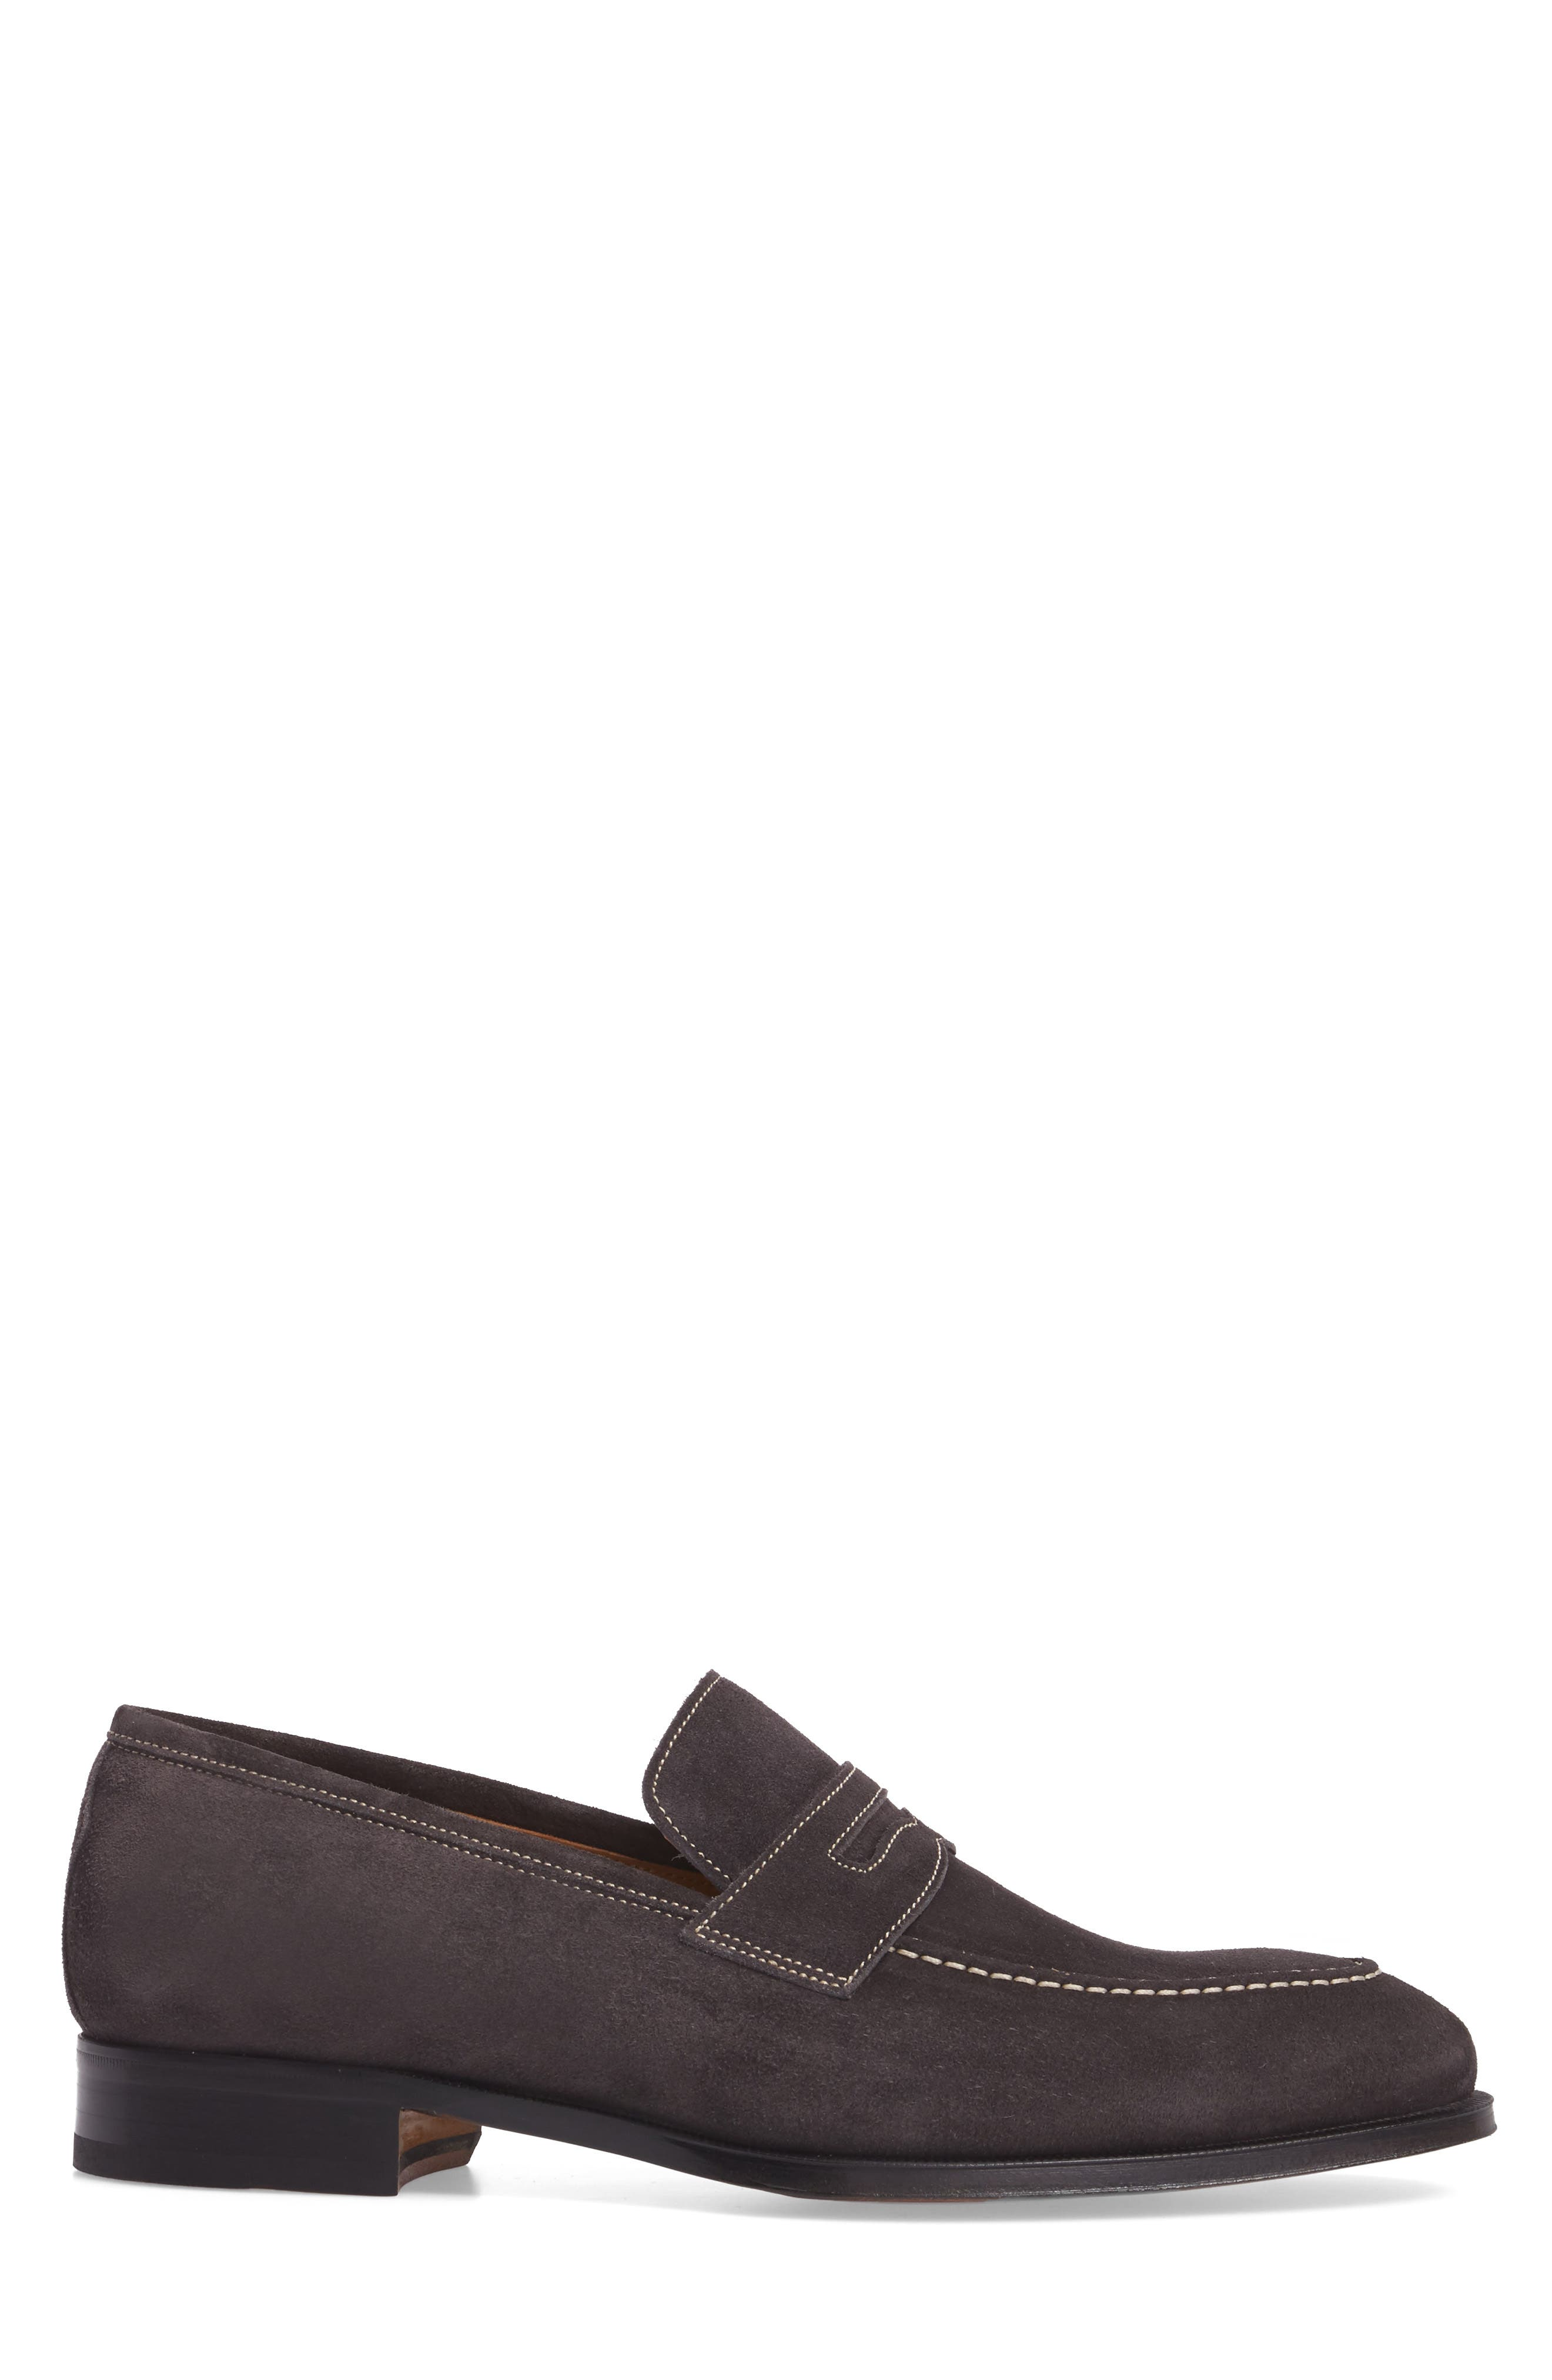 Leather Penny Loafer,                             Alternate thumbnail 11, color,